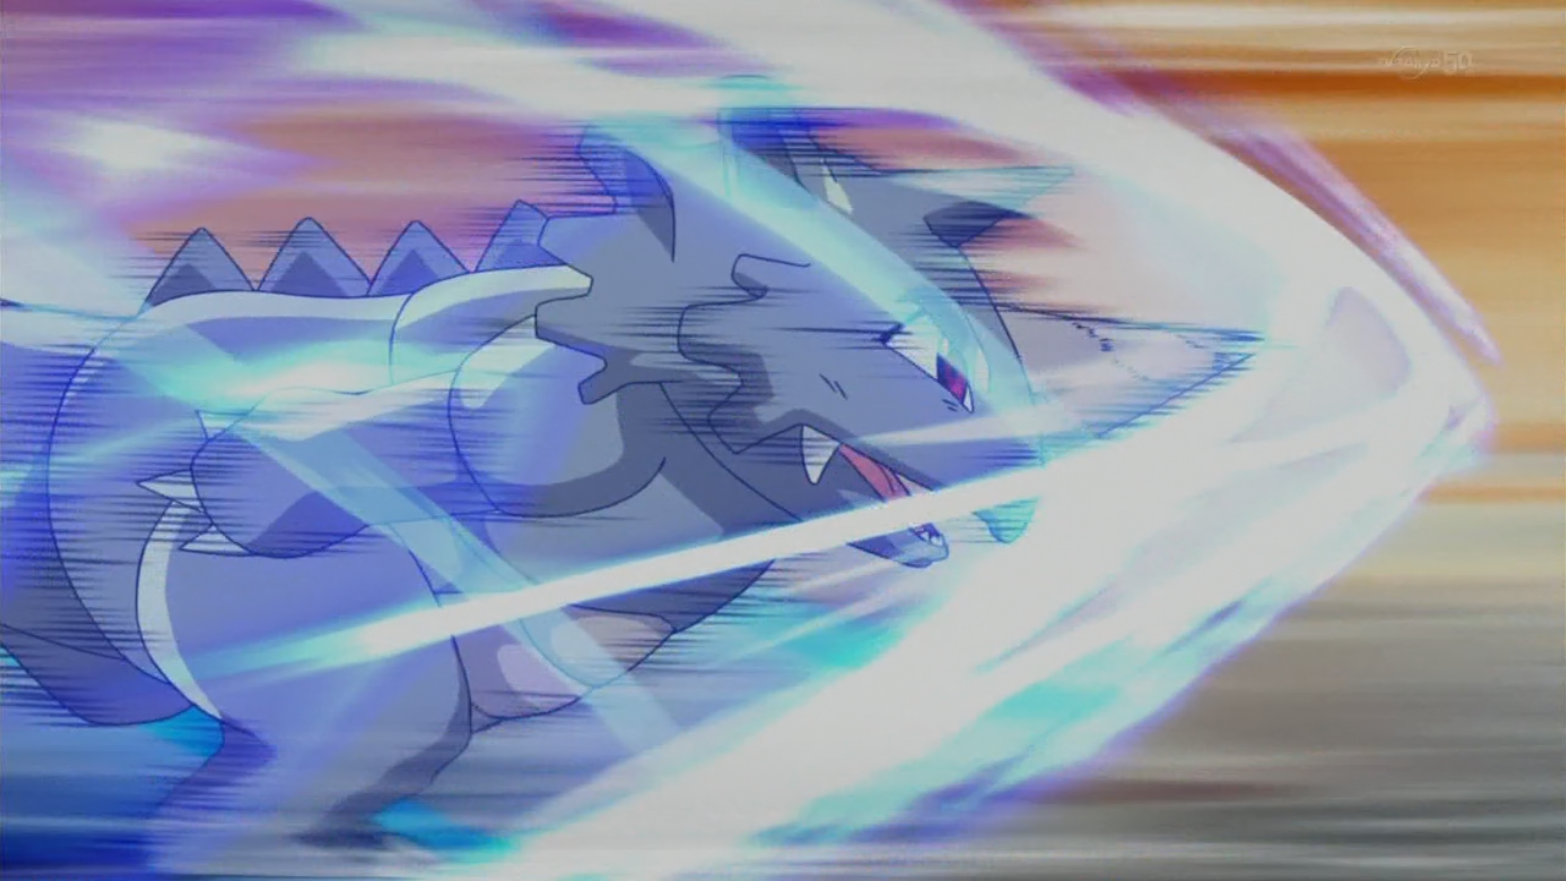 http://img1.wikia.nocookie.net/__cb20140405182459/pokemon/images/9/98/Giovanni_Rhydon_Horn_Drill_PO.png